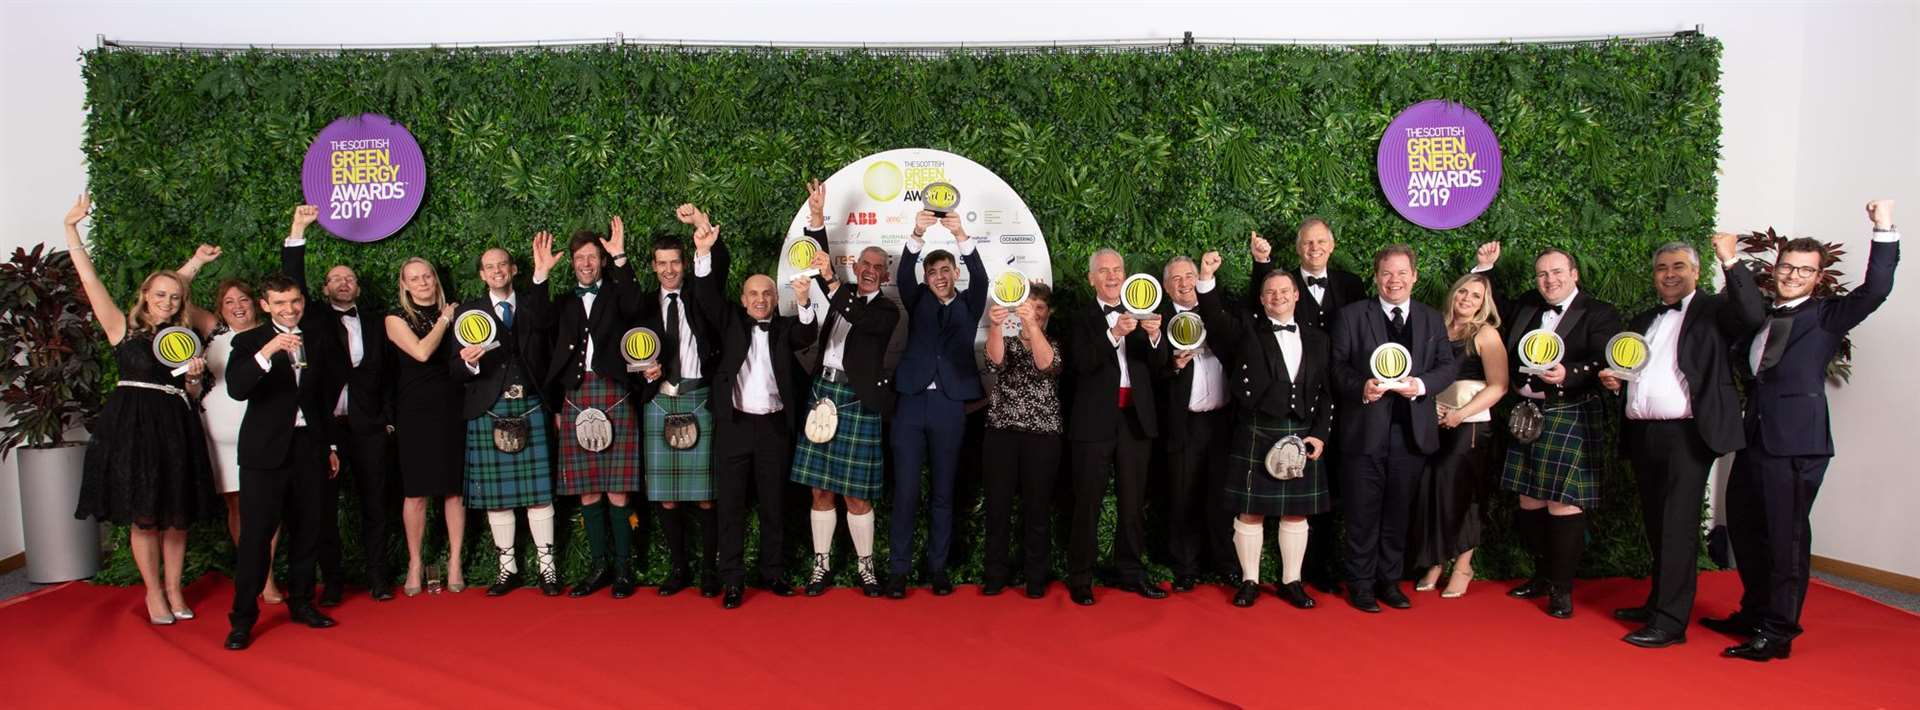 All the winners at the 2019 Scottish Green Energy Awards in Edinburgh.